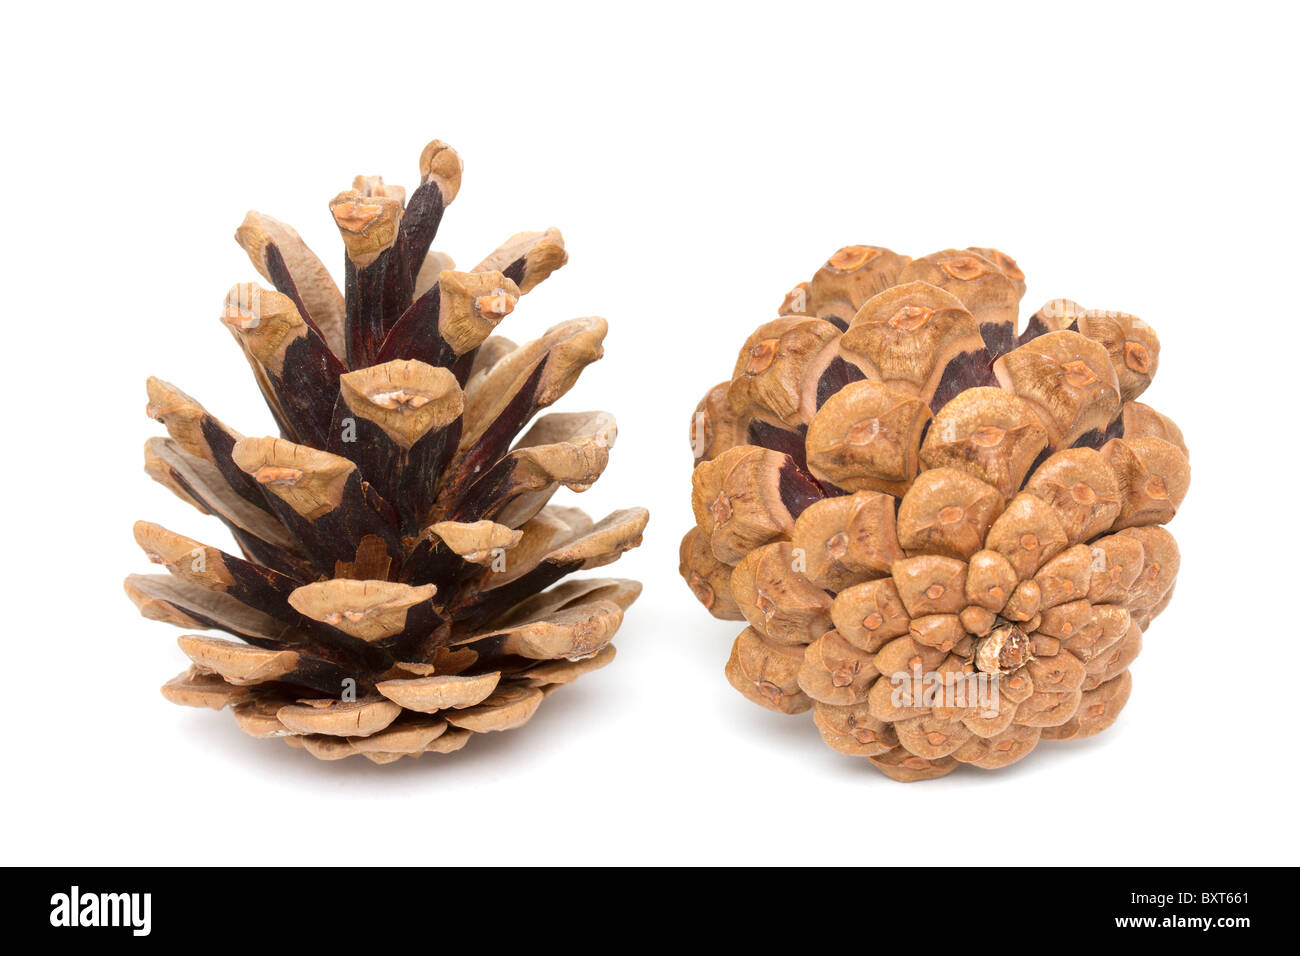 Two pine cones on white background - Stock Image